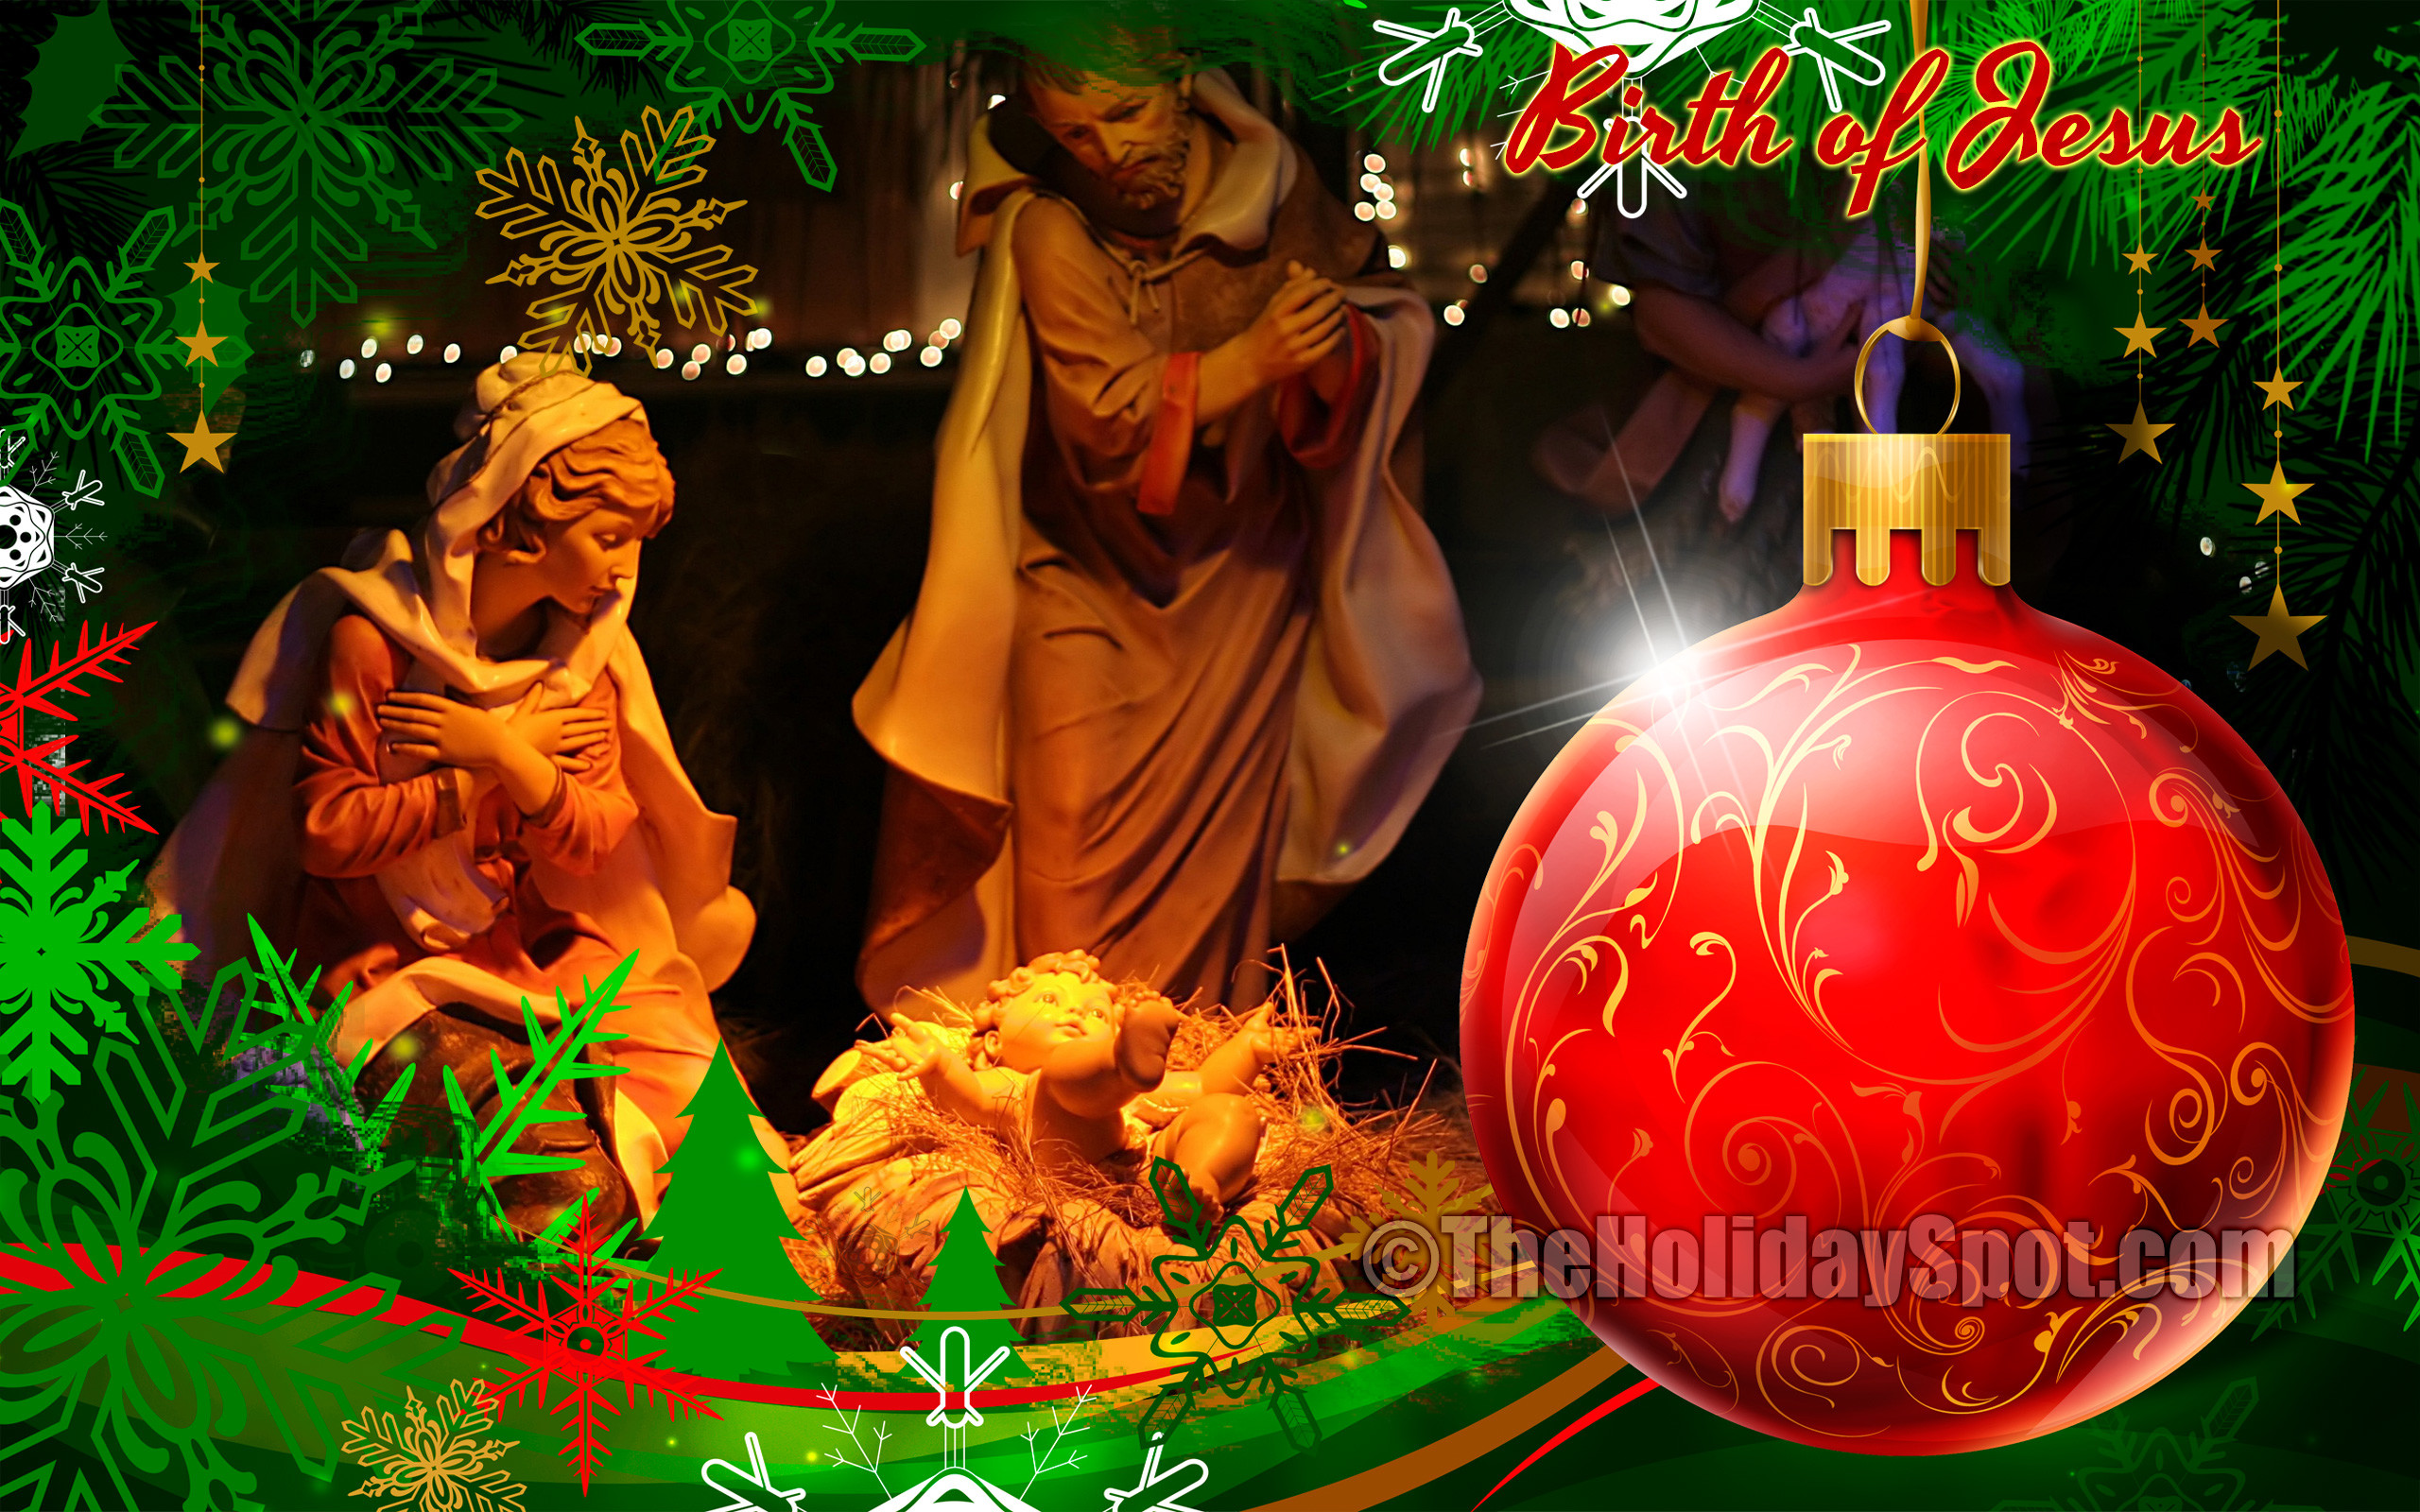 2560x1600 Christmas Wallpaper showing glowing earth during birth of jesus